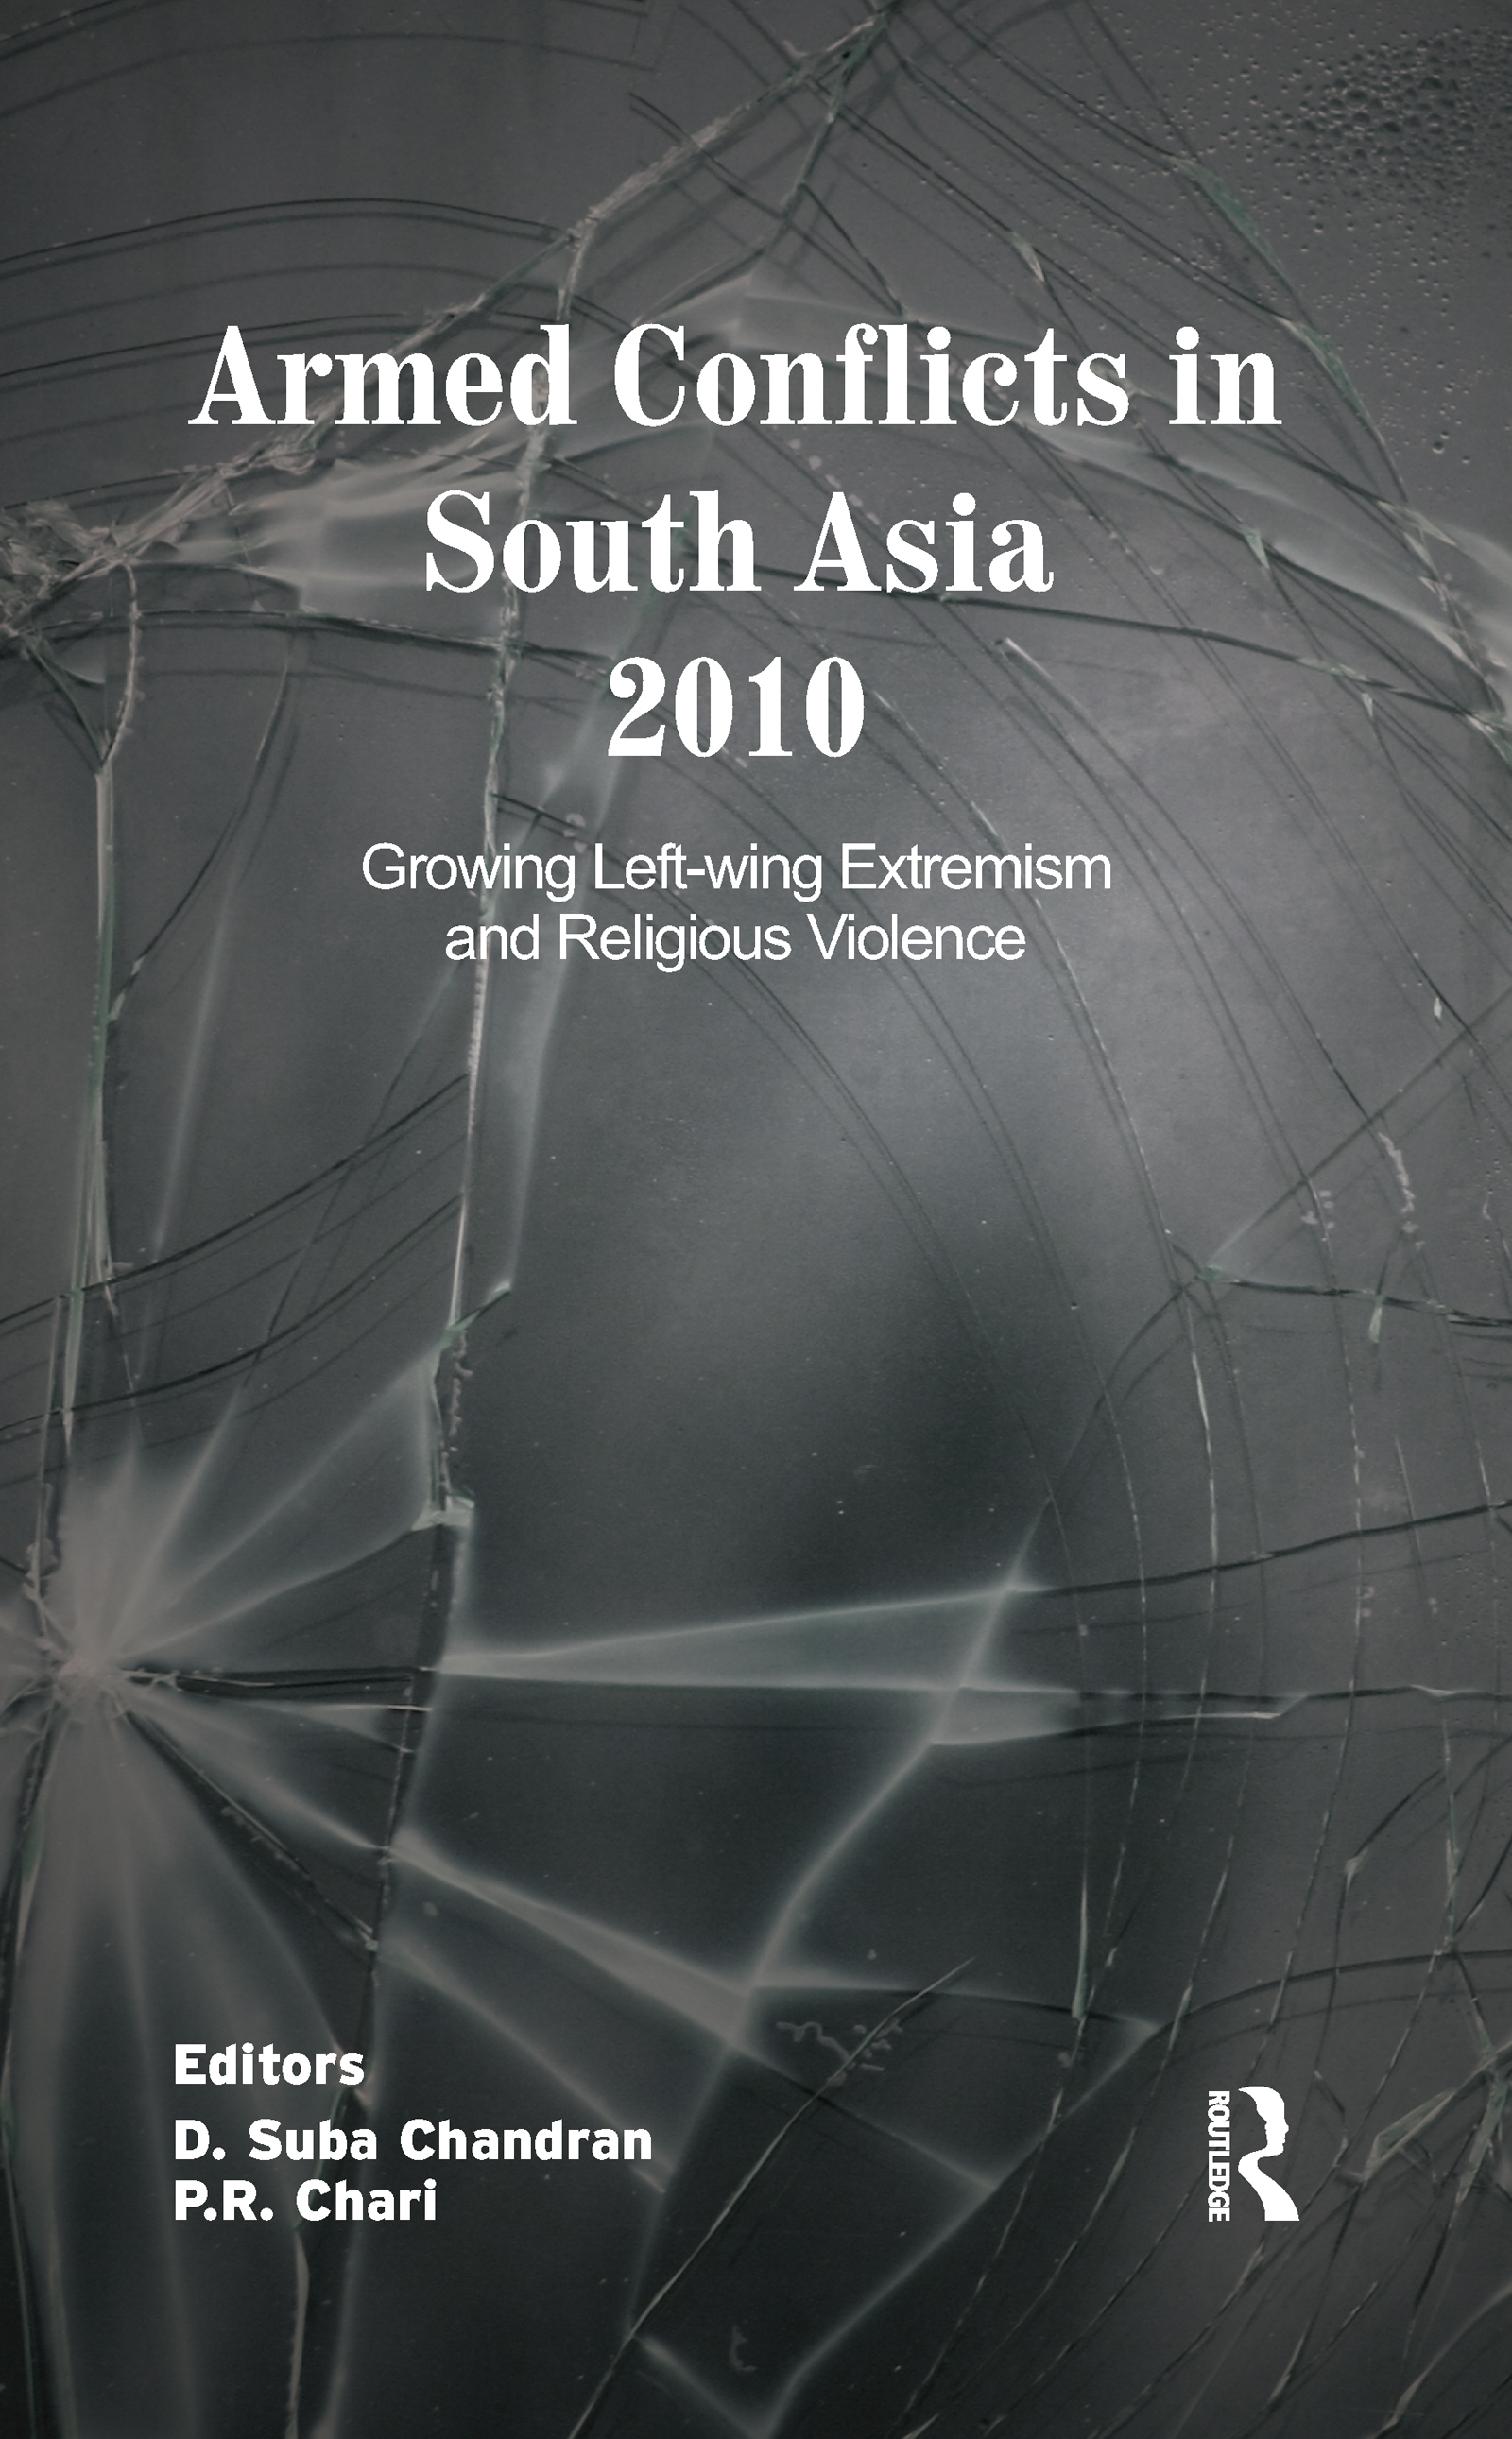 Armed Conflicts in South Asia 2010